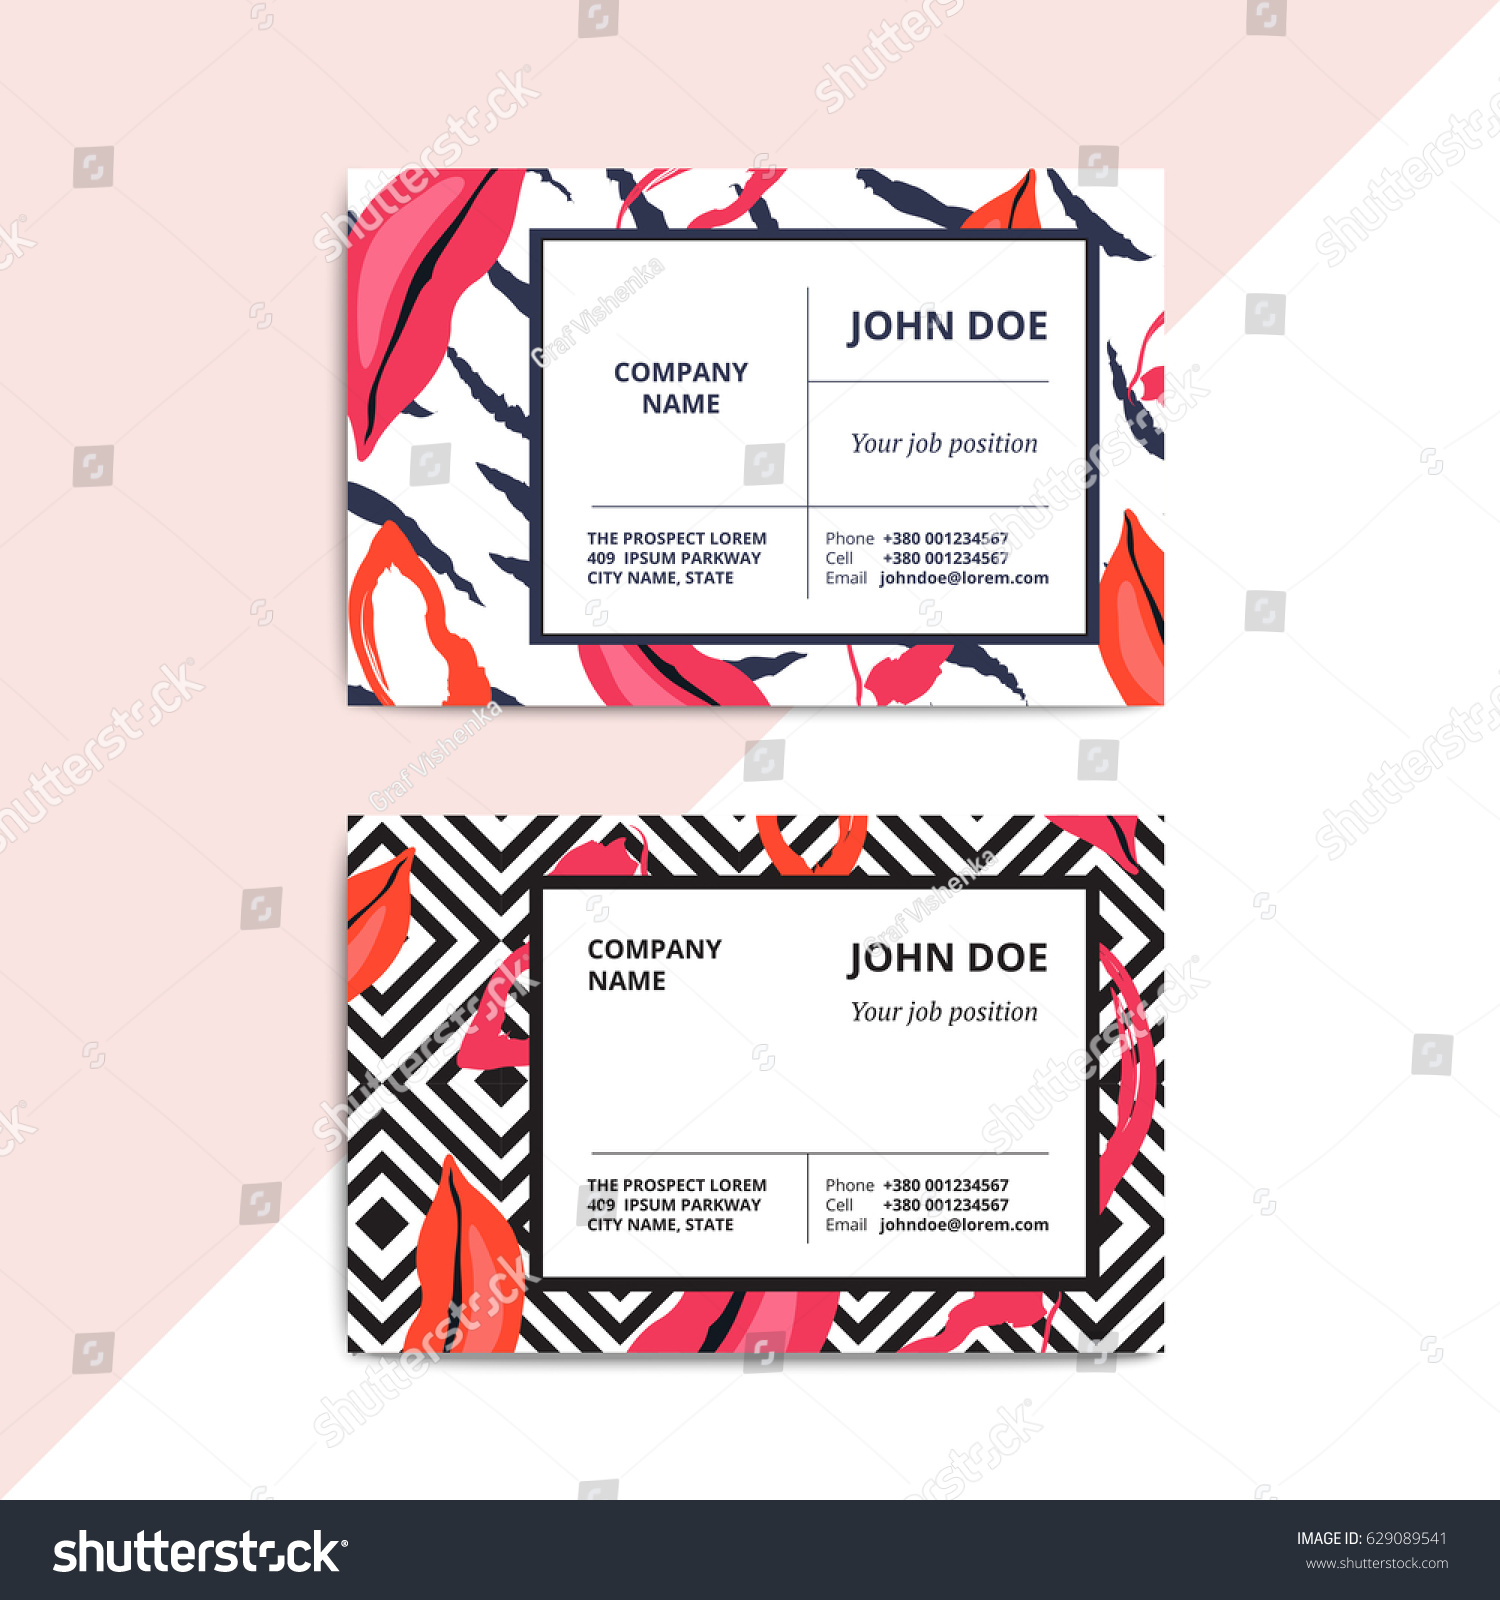 Beauty parlour business card gallery free business cards beauty salon business card psd image collections free business cards beauty salon business cards templates free magicingreecefo Choice Image